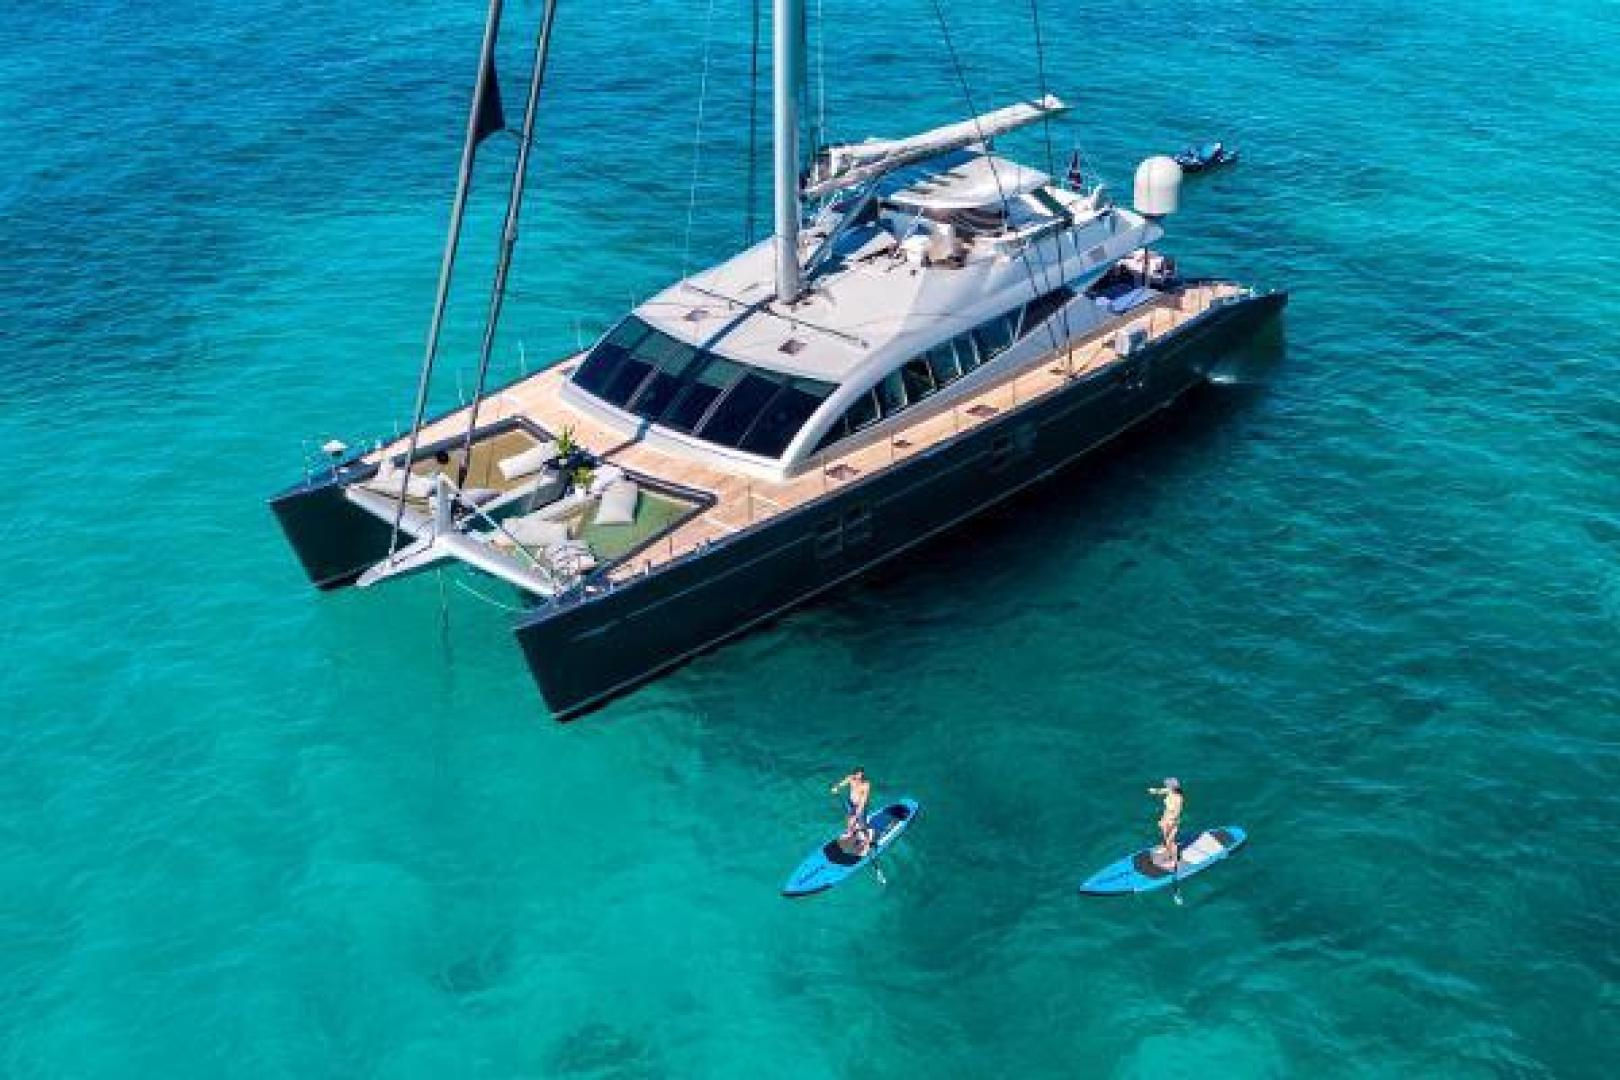 Catamaran-Blue Coast Yachts  2011-CARTOUCHE Antigua & Barbuda-1296523 | Thumbnail